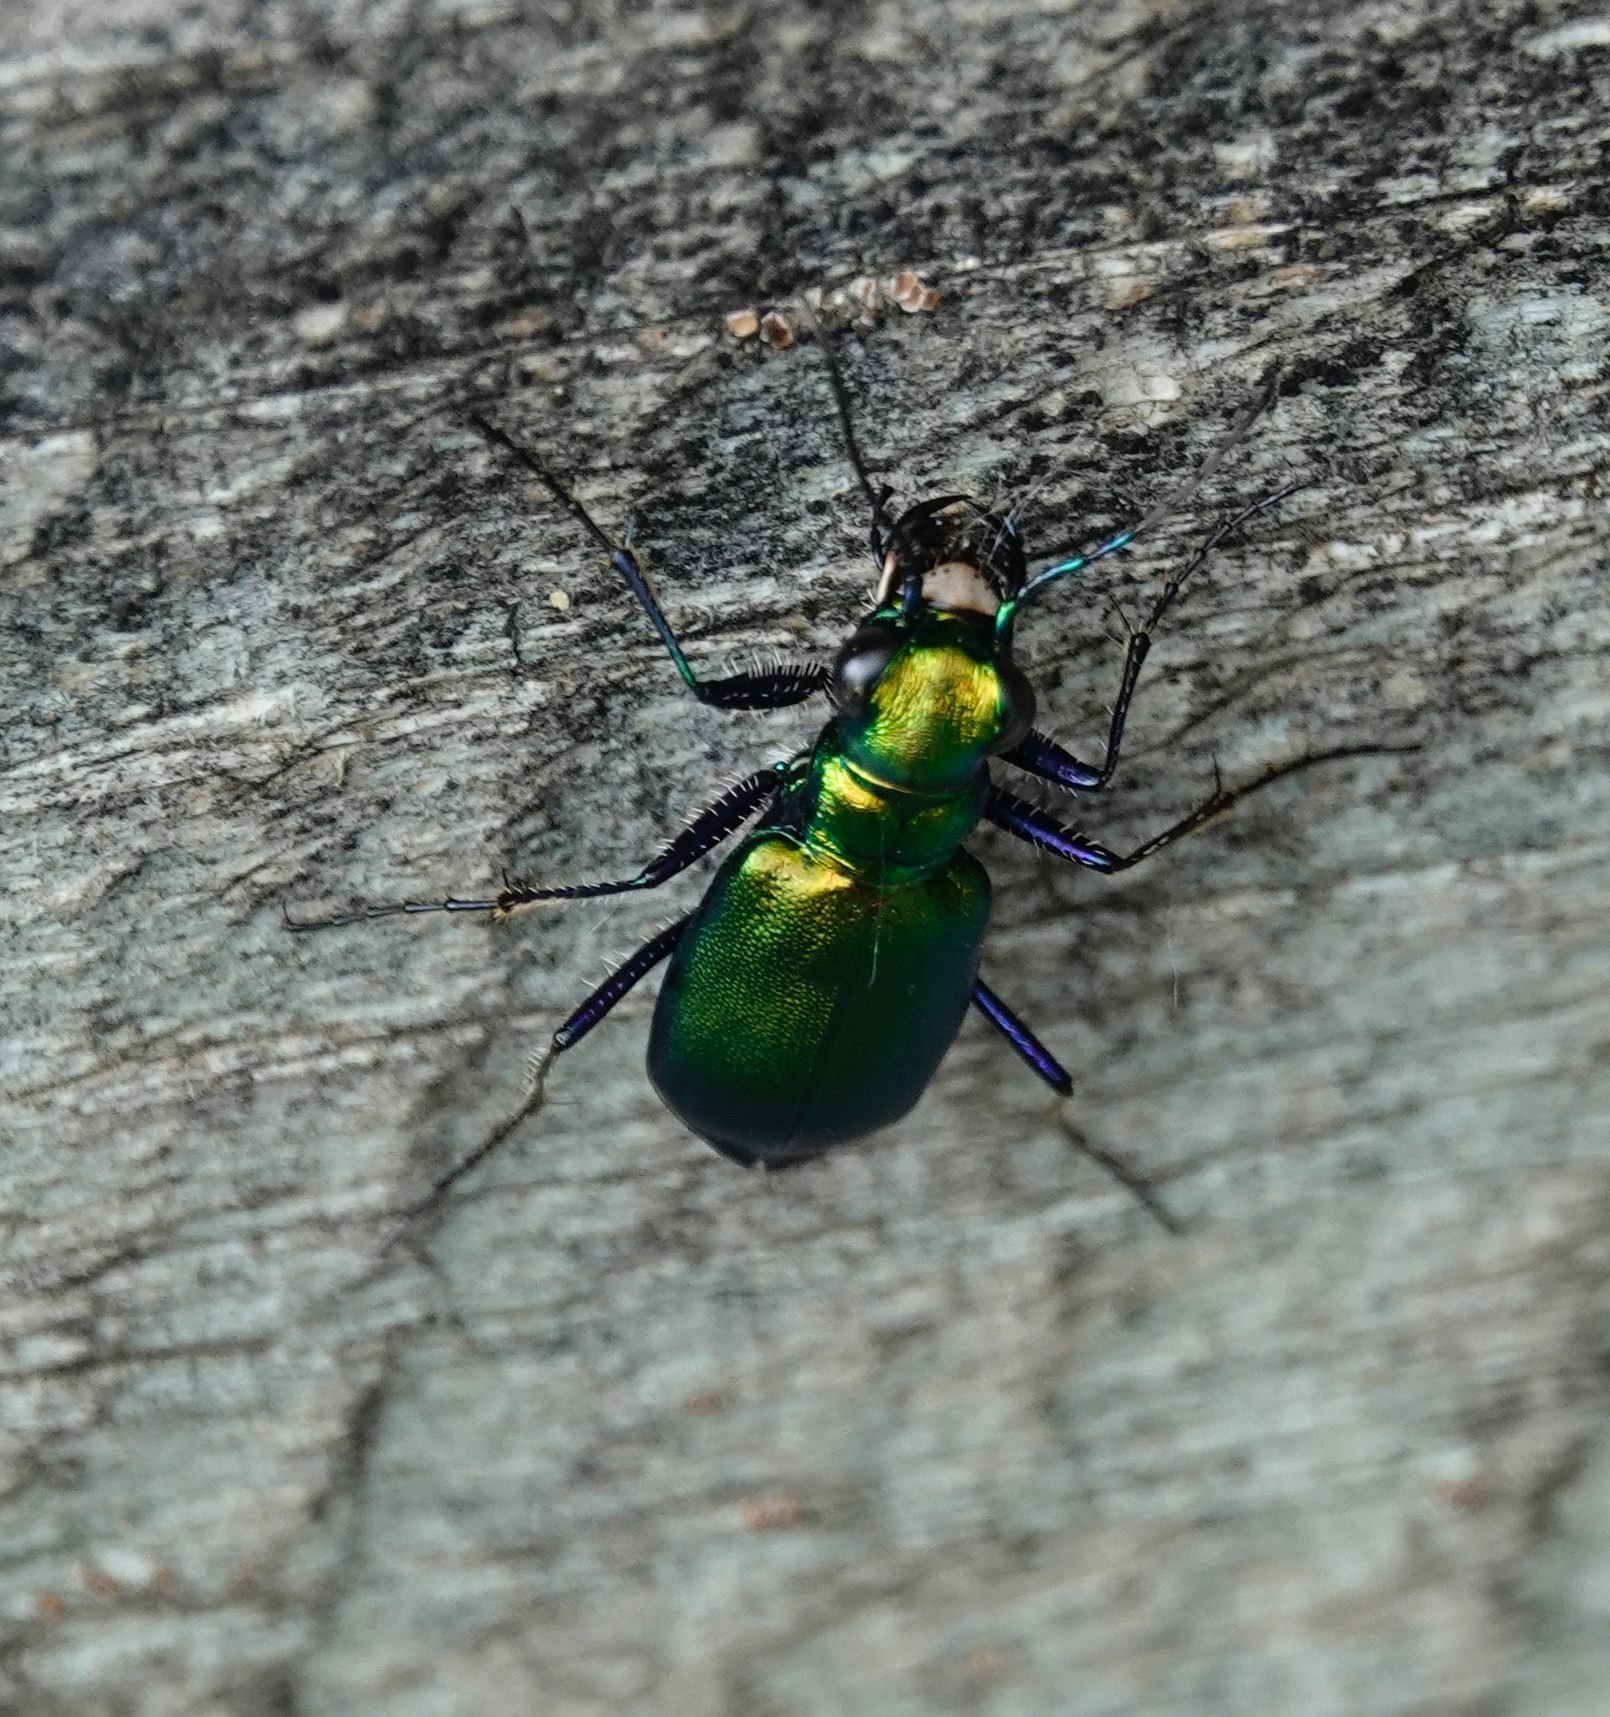 Tiger beetles are fast runners and amazing sights.